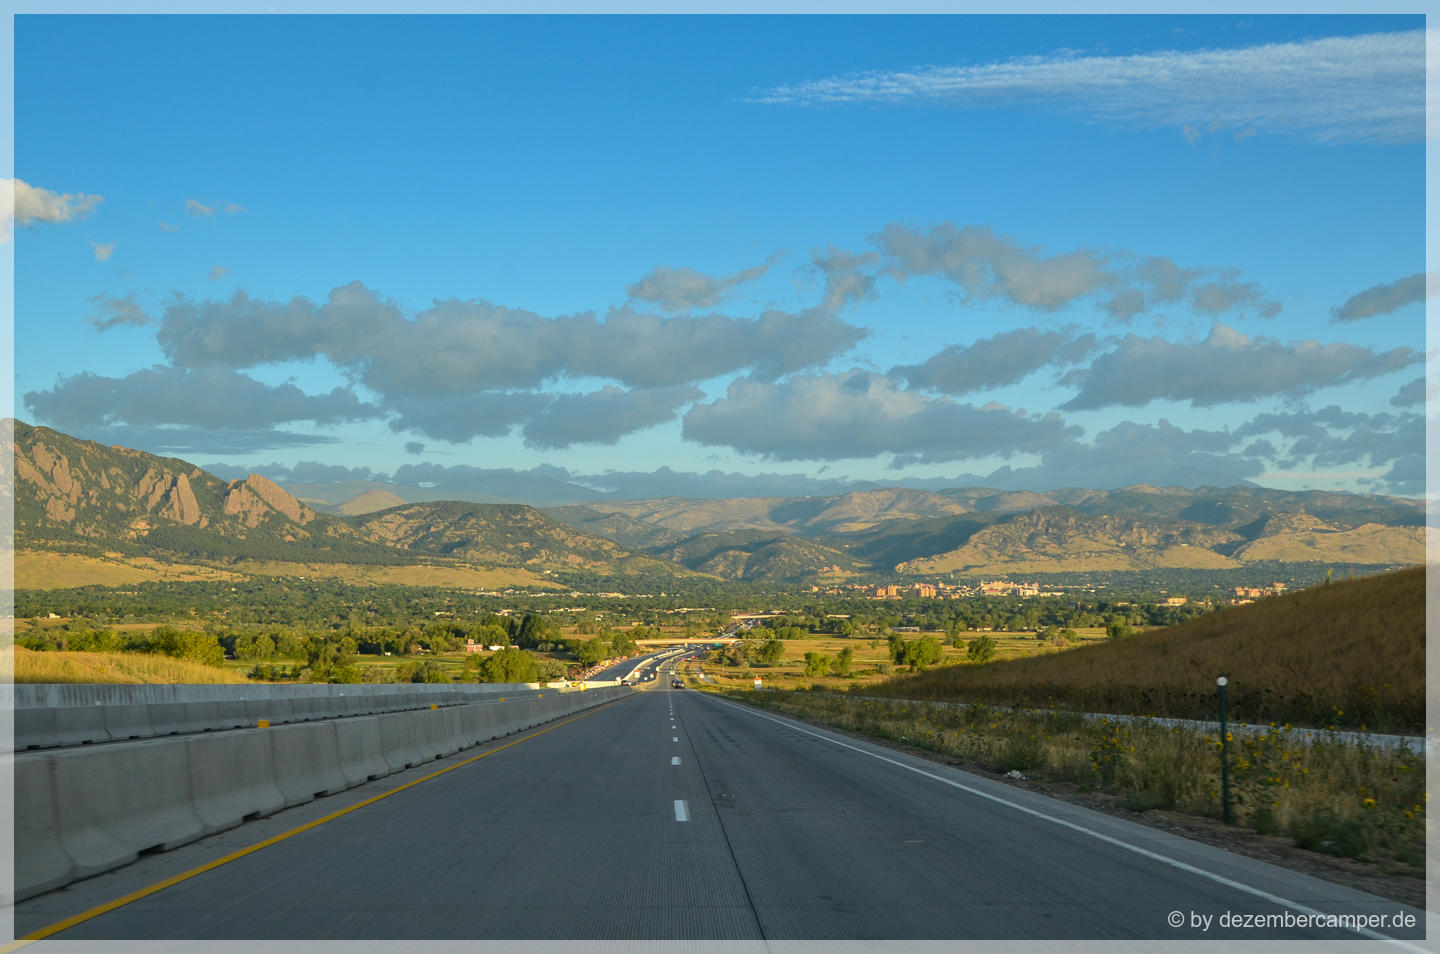 on the road to Boulder